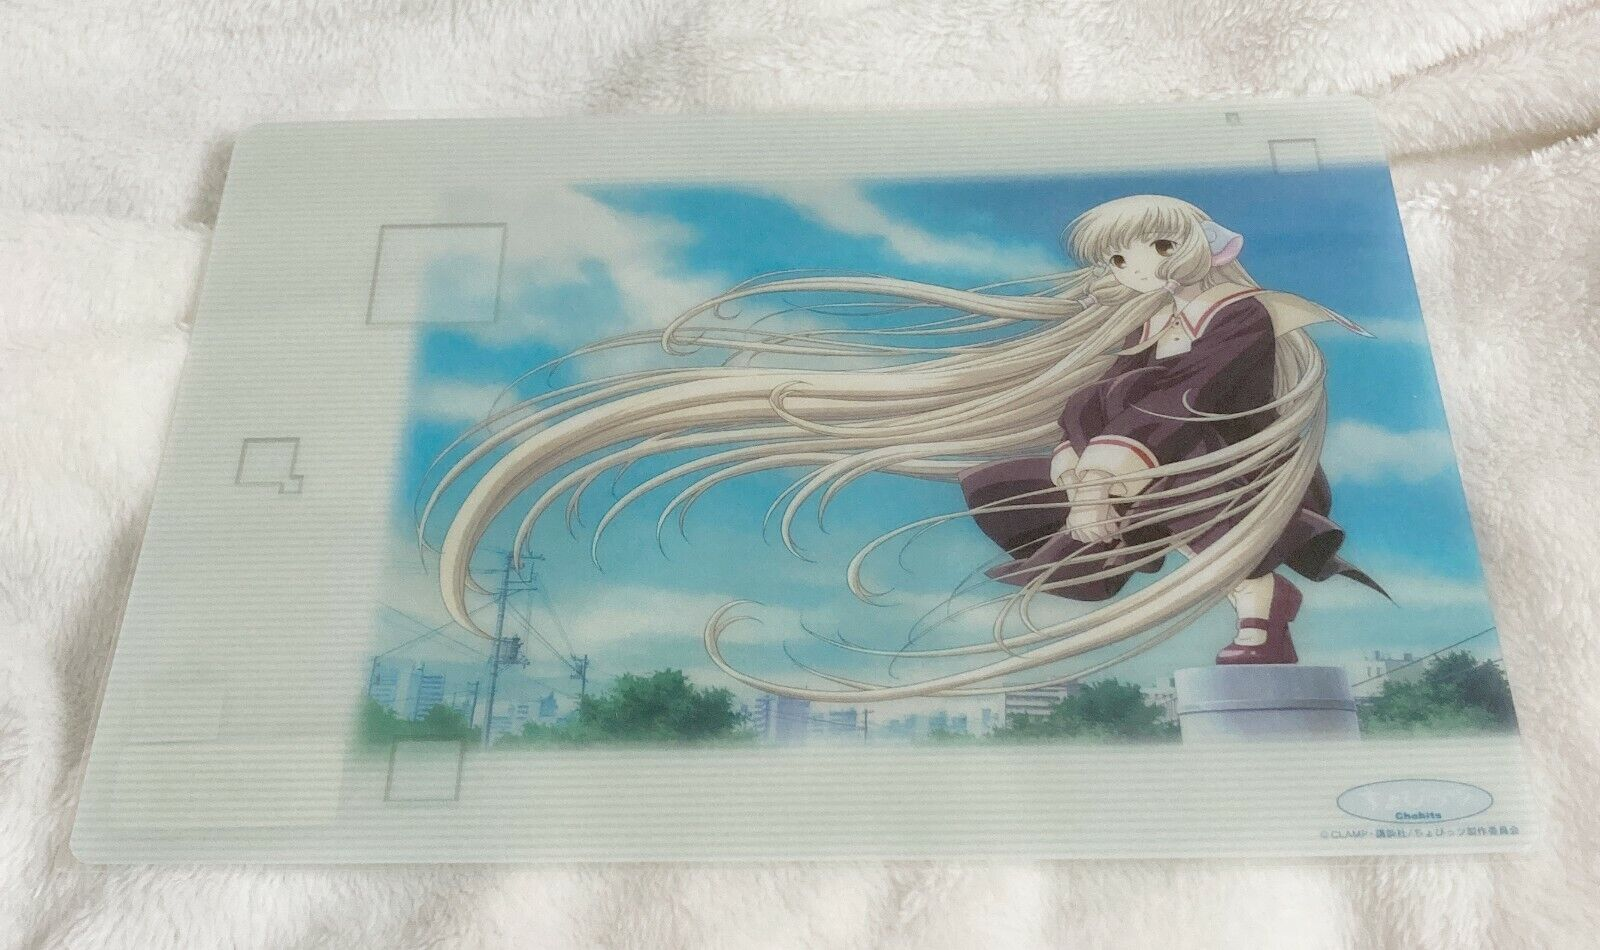 Kodansha, Vintage CLAMP Chobits Character One Sided Pencil Board, 10 x 7 Inch